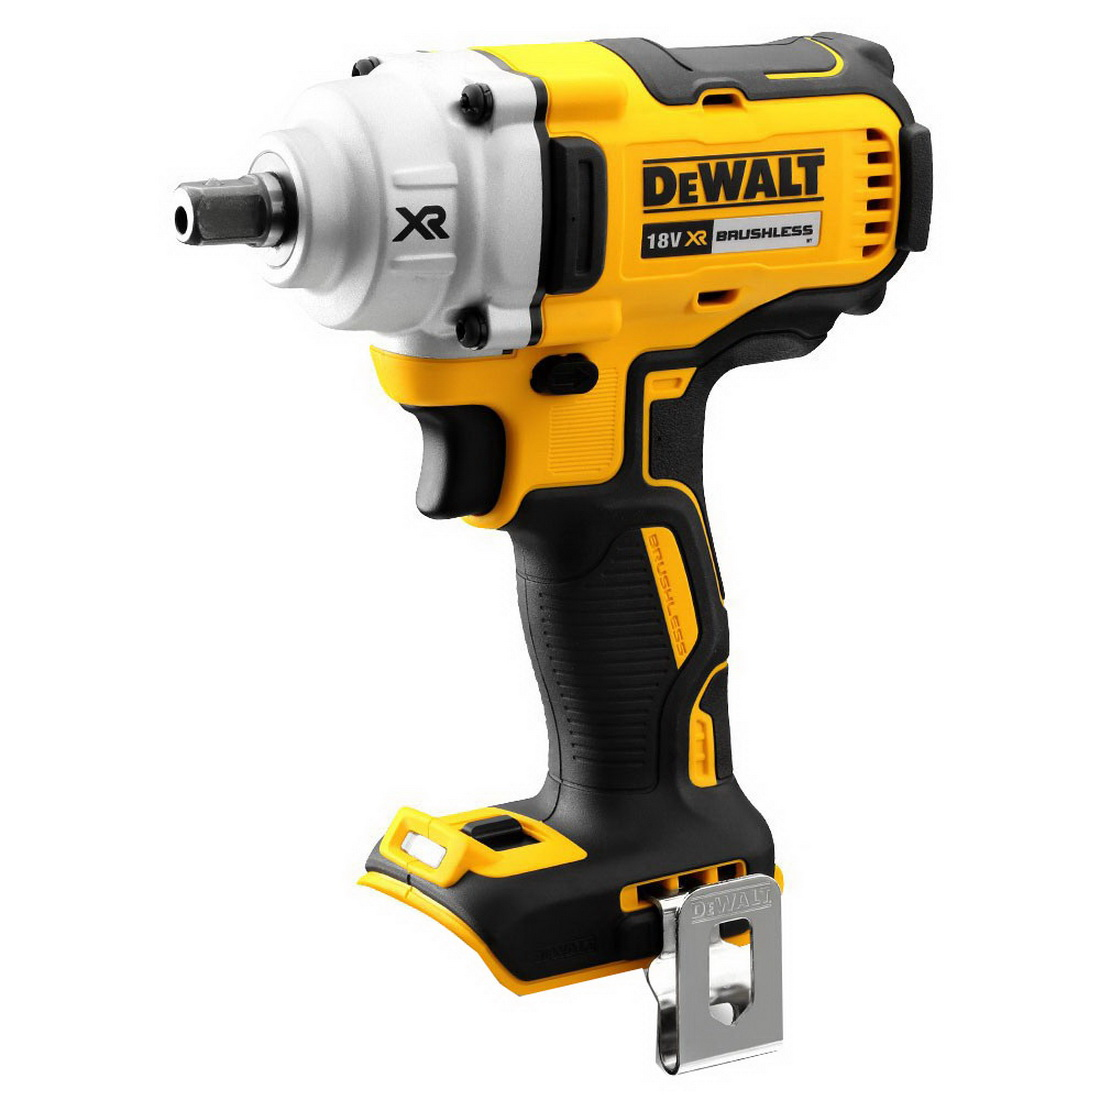 18V 1/2 inch XR Lithium-Ion Cordless Brushless Mid Torque Impact Wrench Skin